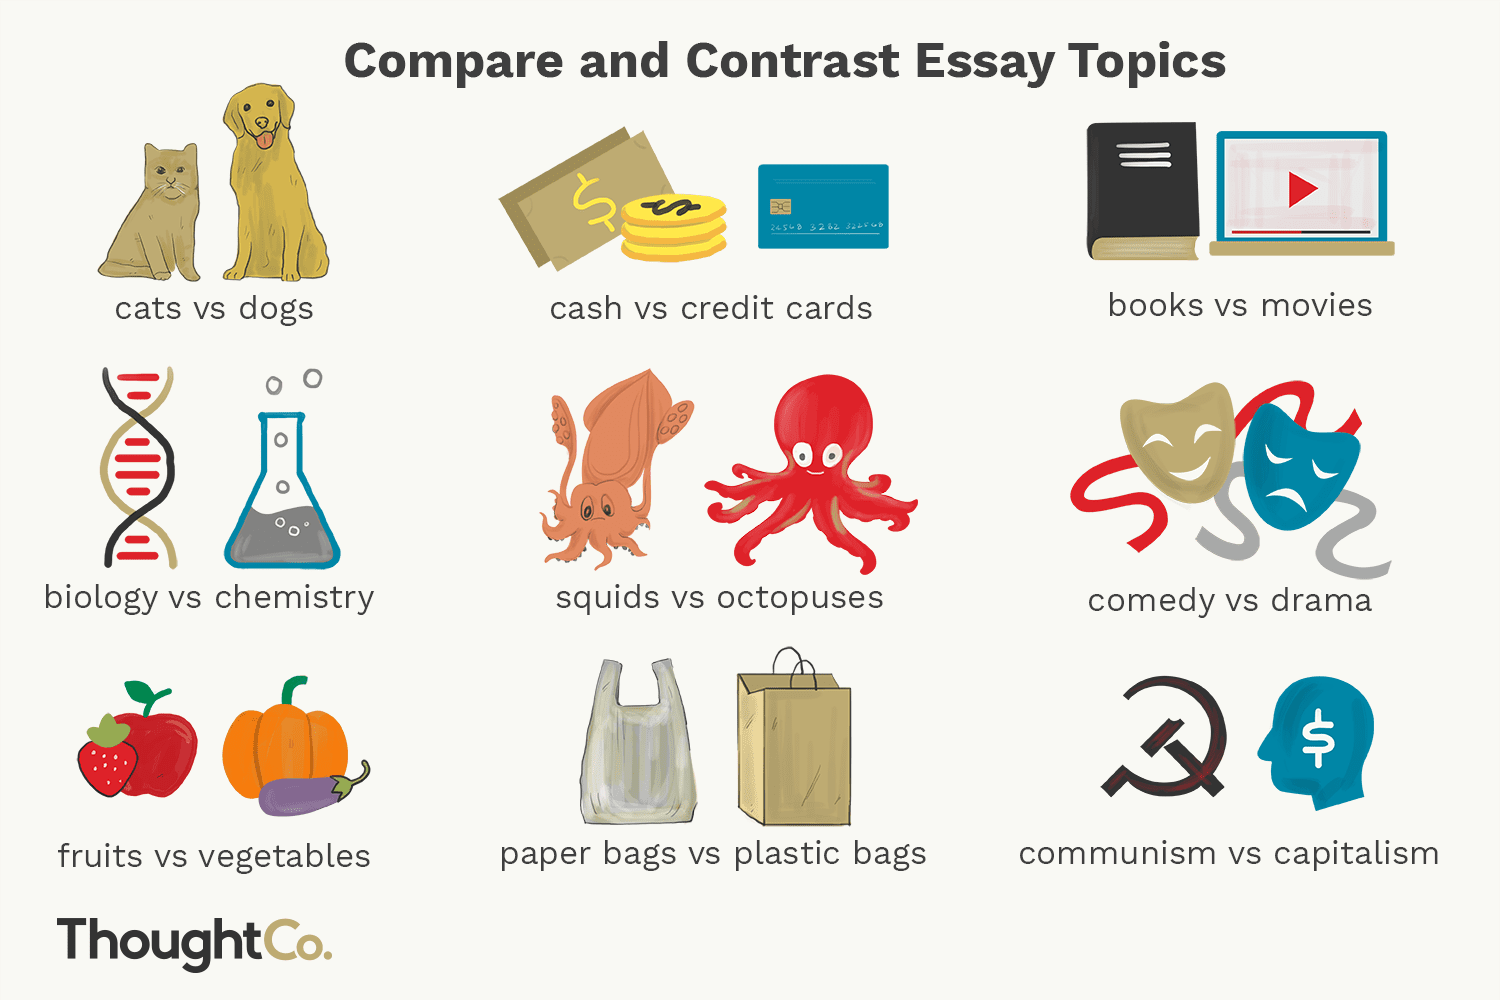 101 Compare And Contrast Essay Ideas For Students